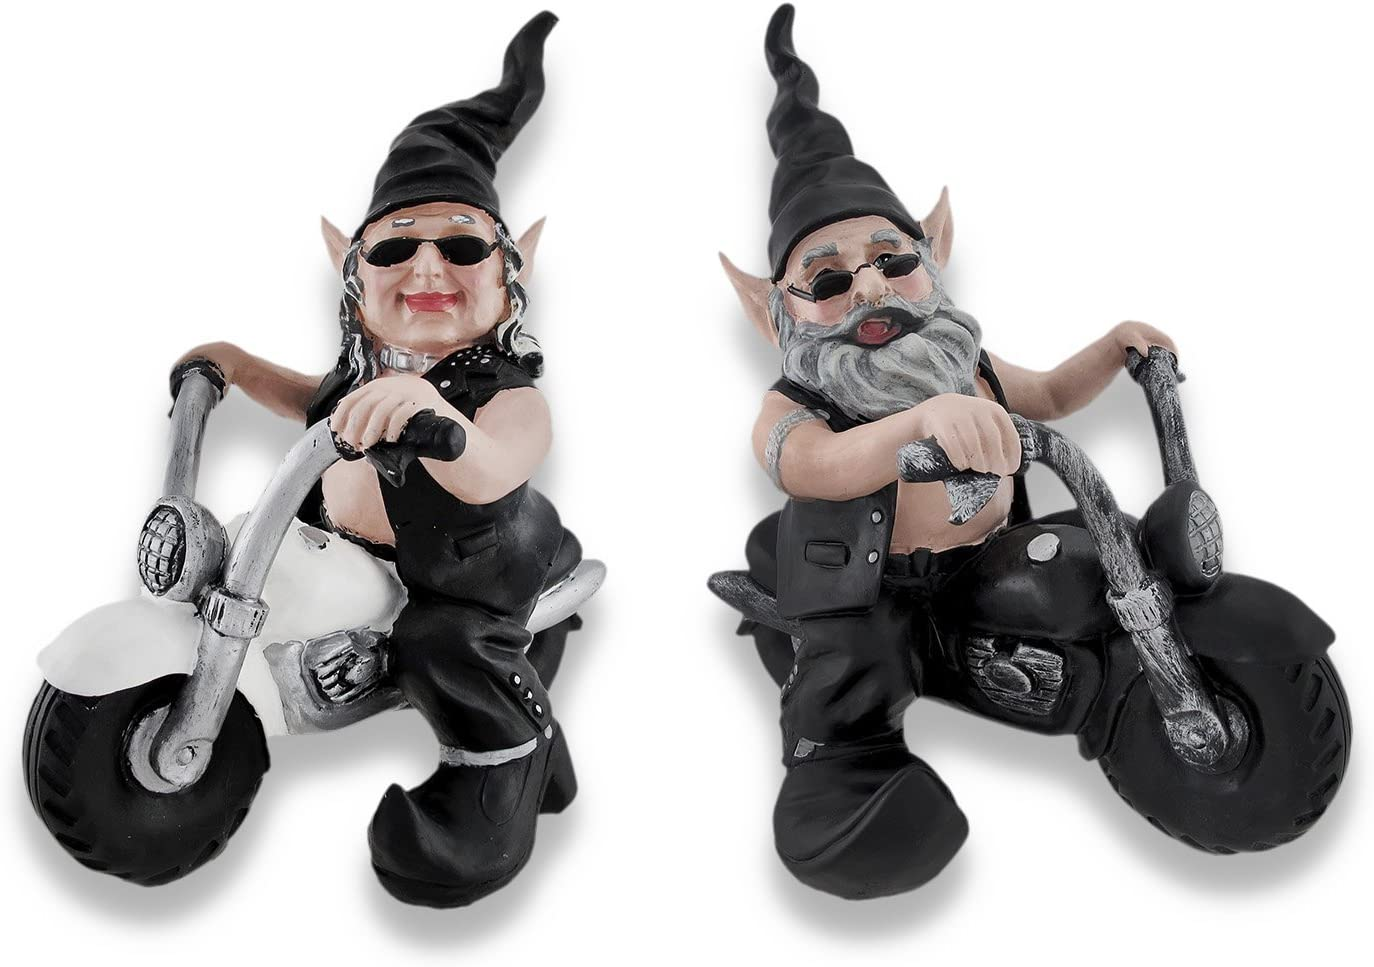 Zeckos Nowaday Gnomes Motorcycle Bikers- Male Dude on Black Bike and Female Chick Gnome on White Cycle Figurine Statue